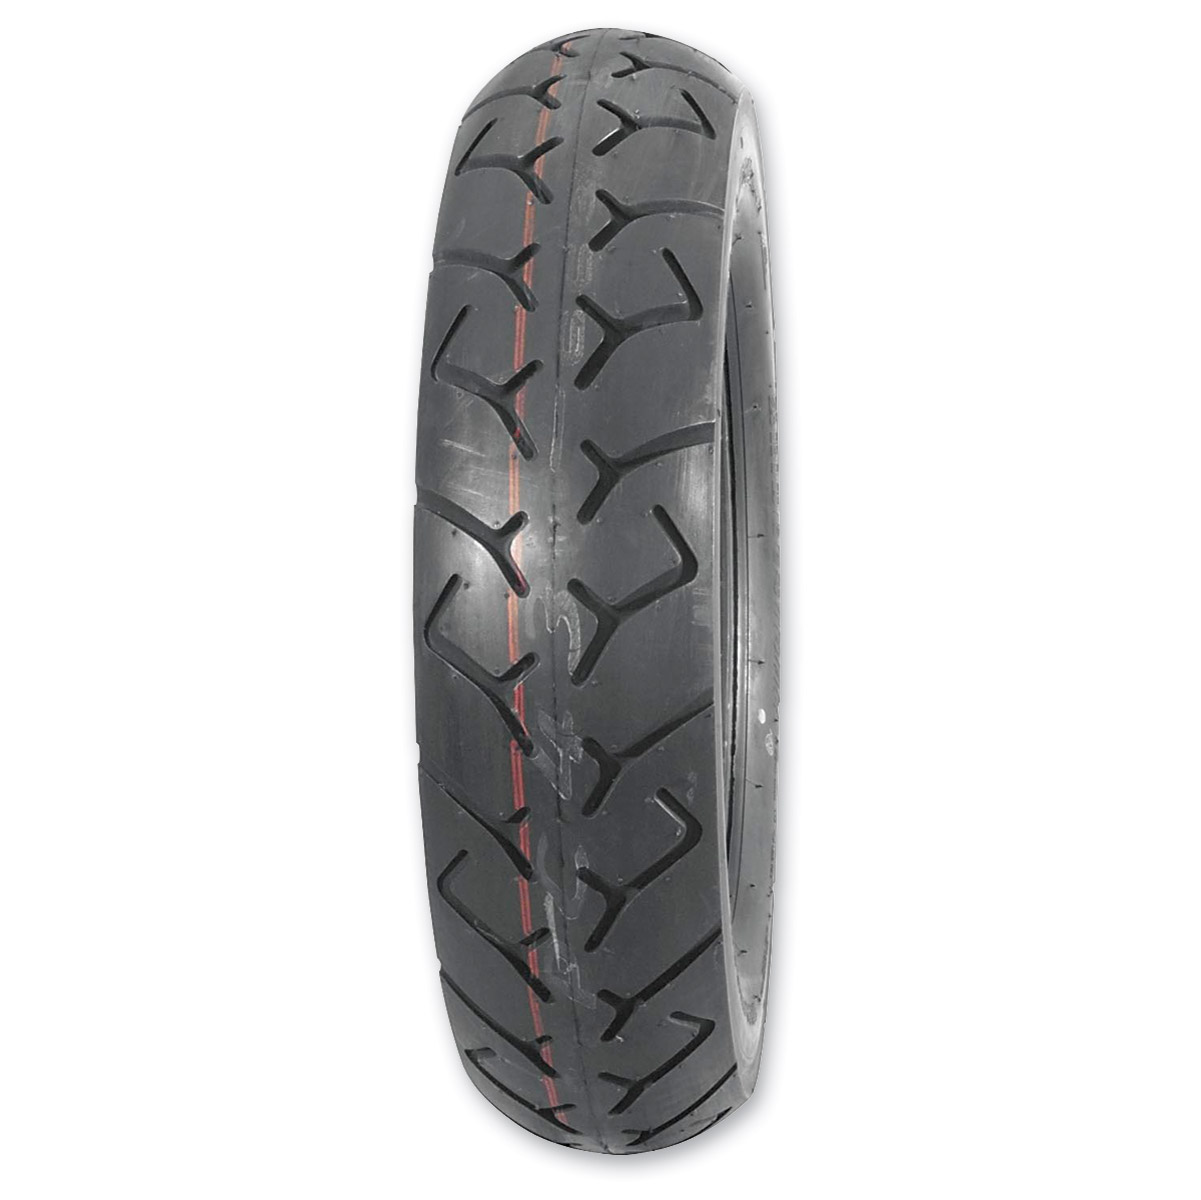 Bridgestone Exedra G702 160/80-16 Rear Tire